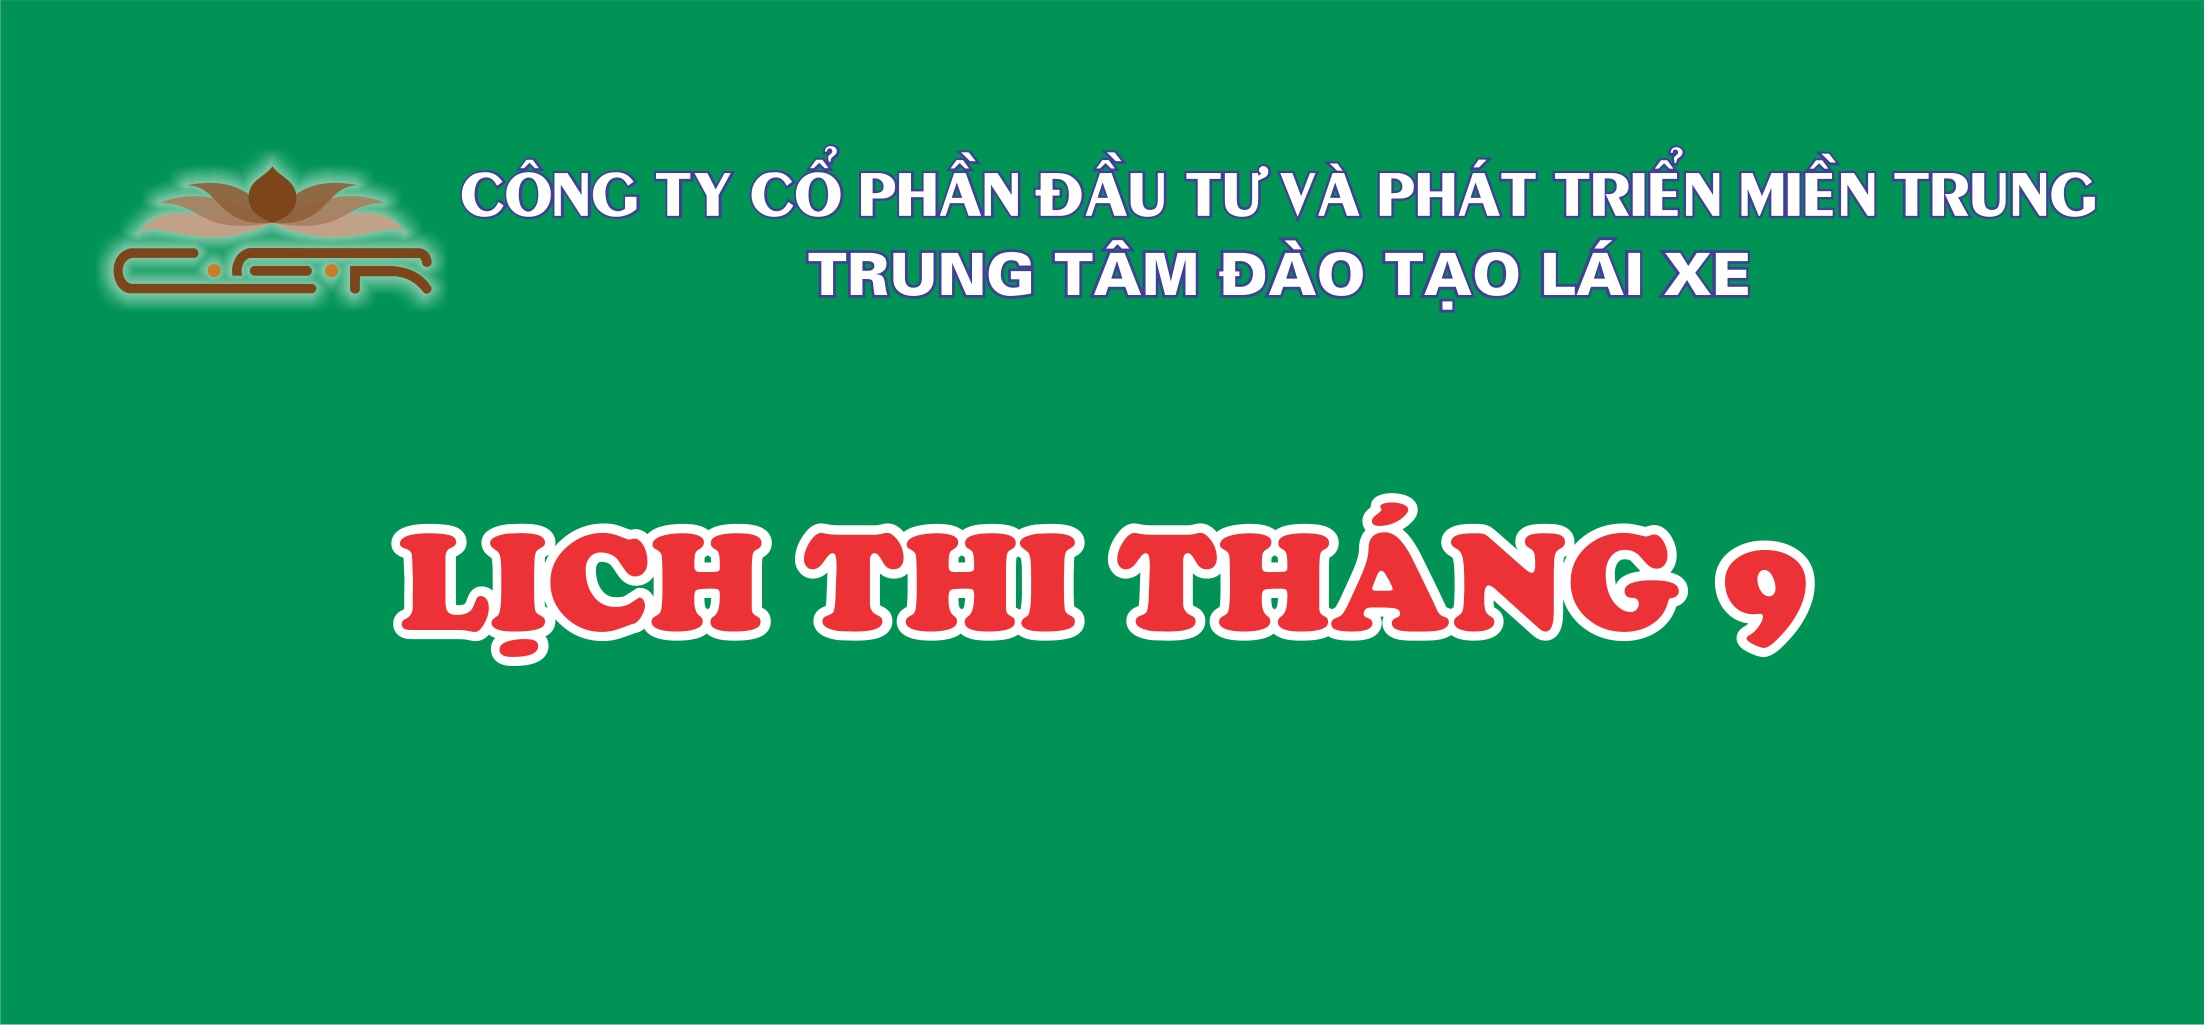 lich-thi-sat-hach-a1-tot-nghiep-o-to-thang-9-nam-2014